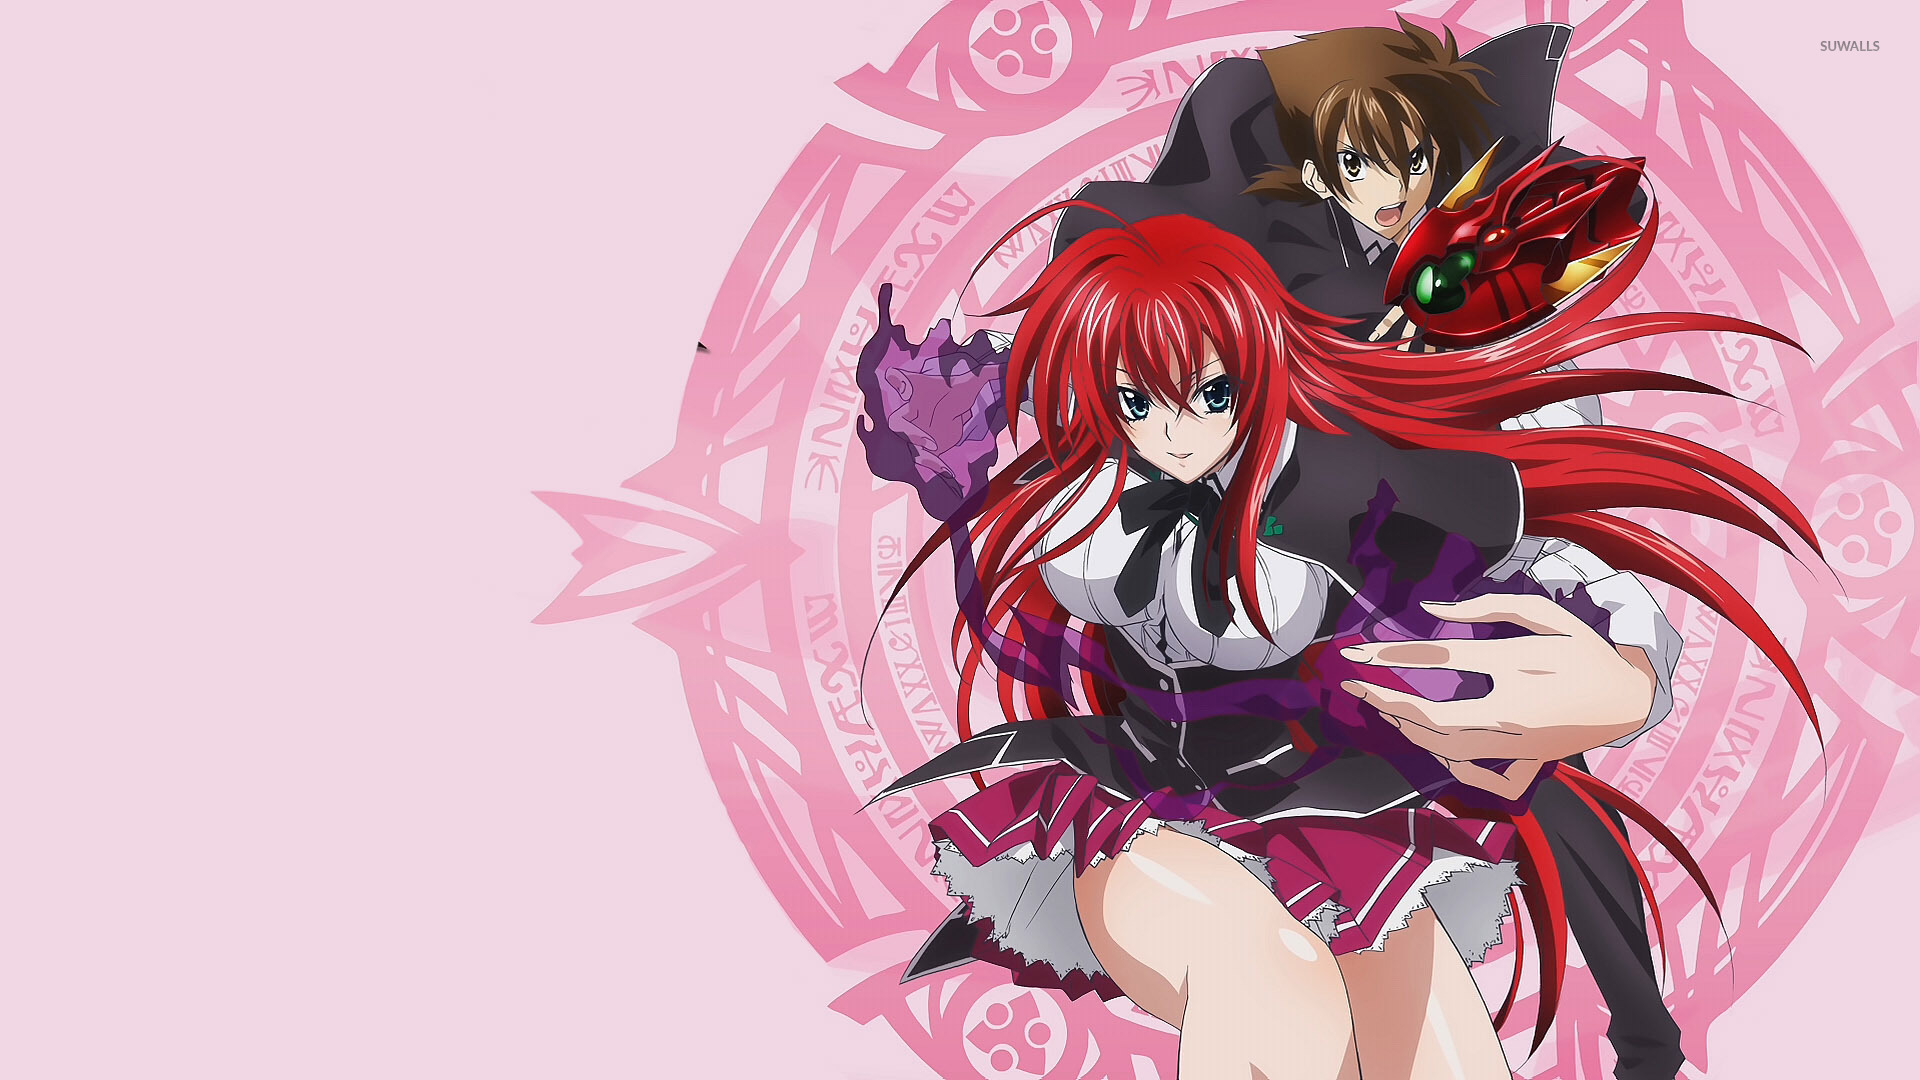 High School Dxd Wallpaper Anime Wallpapers 29208